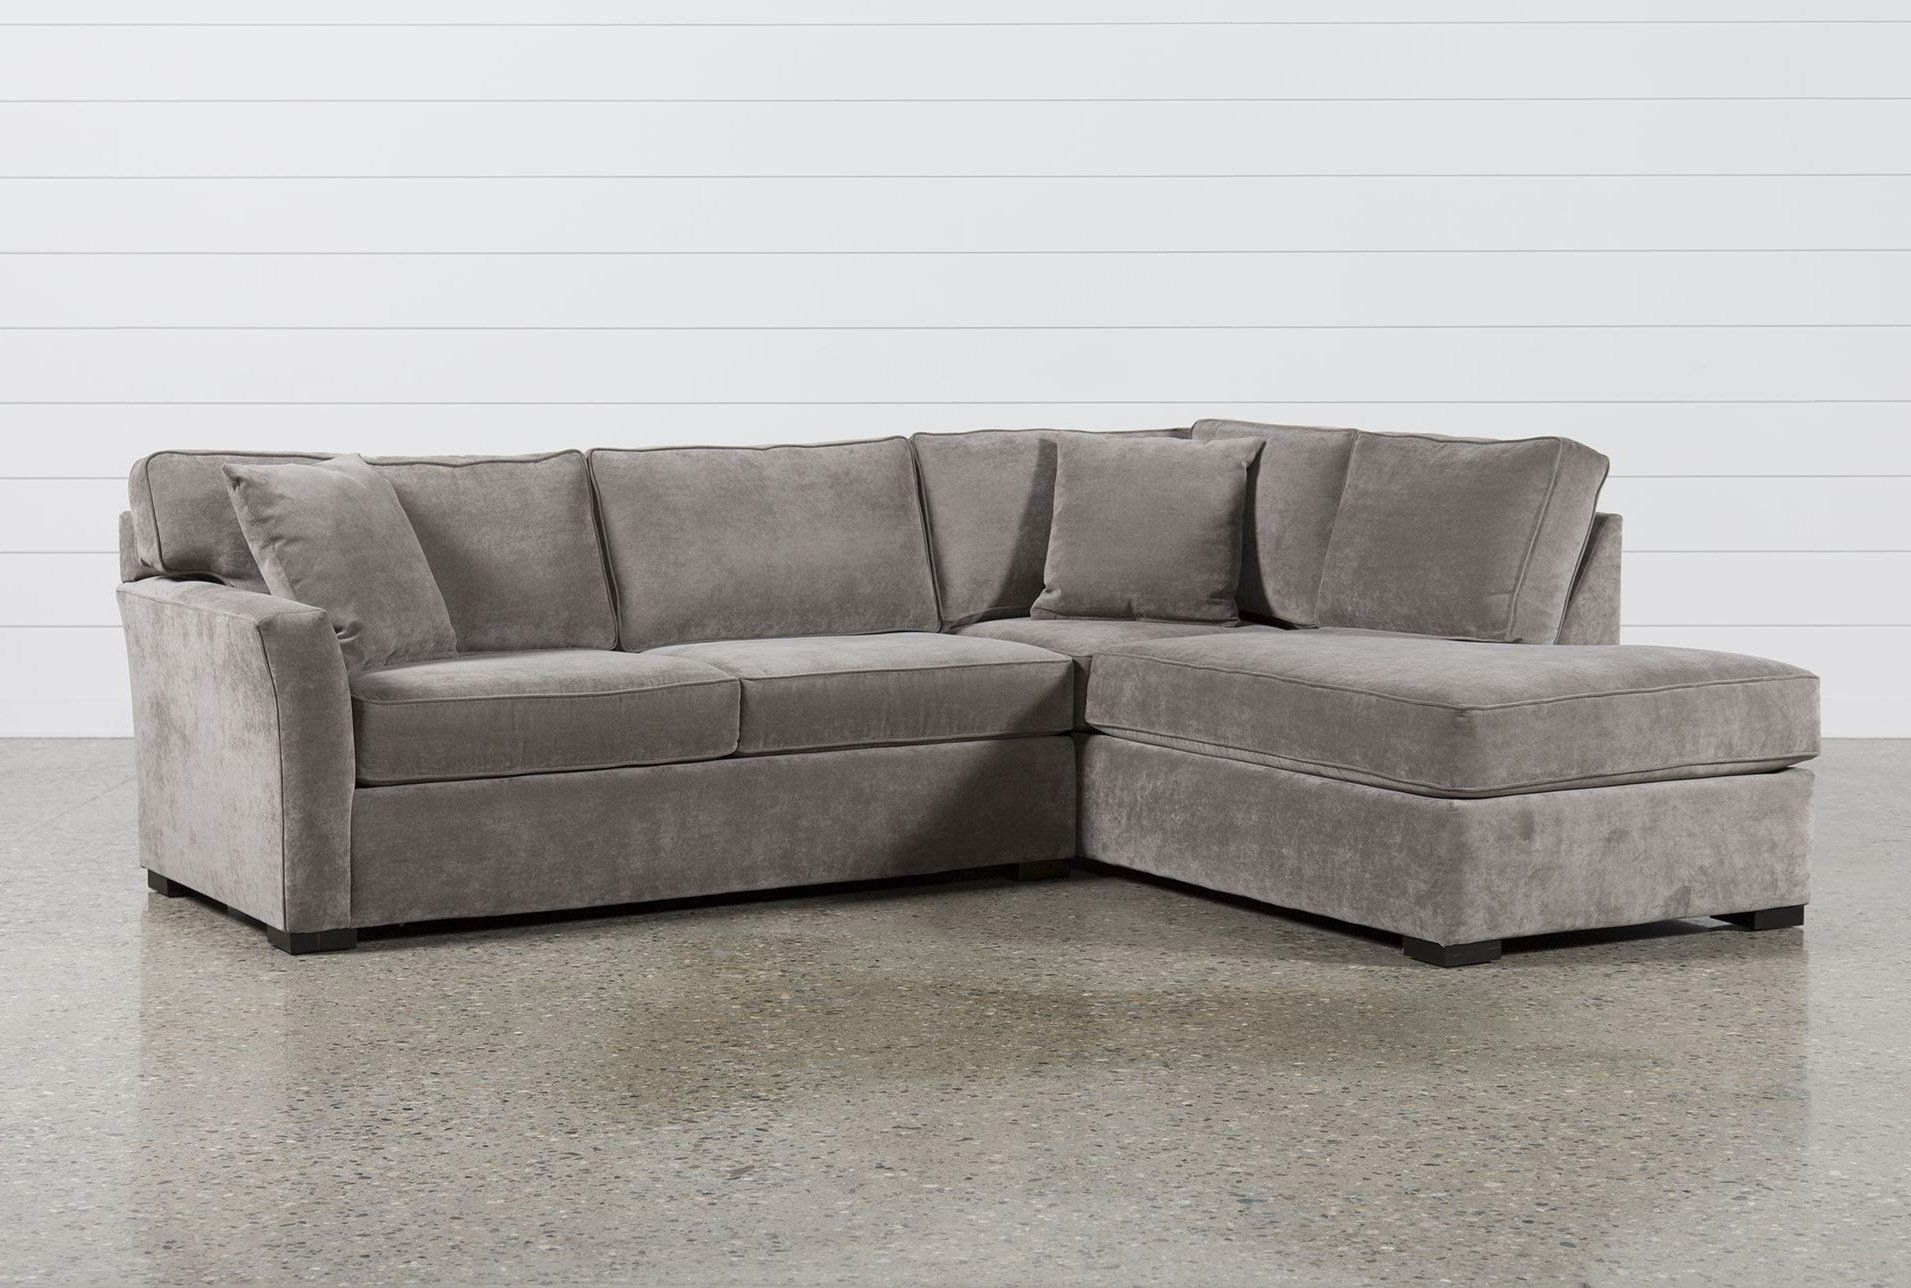 Aspen 2 Piece Sectional W/raf Chaise, Grey, Sofas | Upholstery, Full with regard to Taren Reversible Sofa/chaise Sleeper Sectionals With Storage Ottoman (Image 2 of 30)